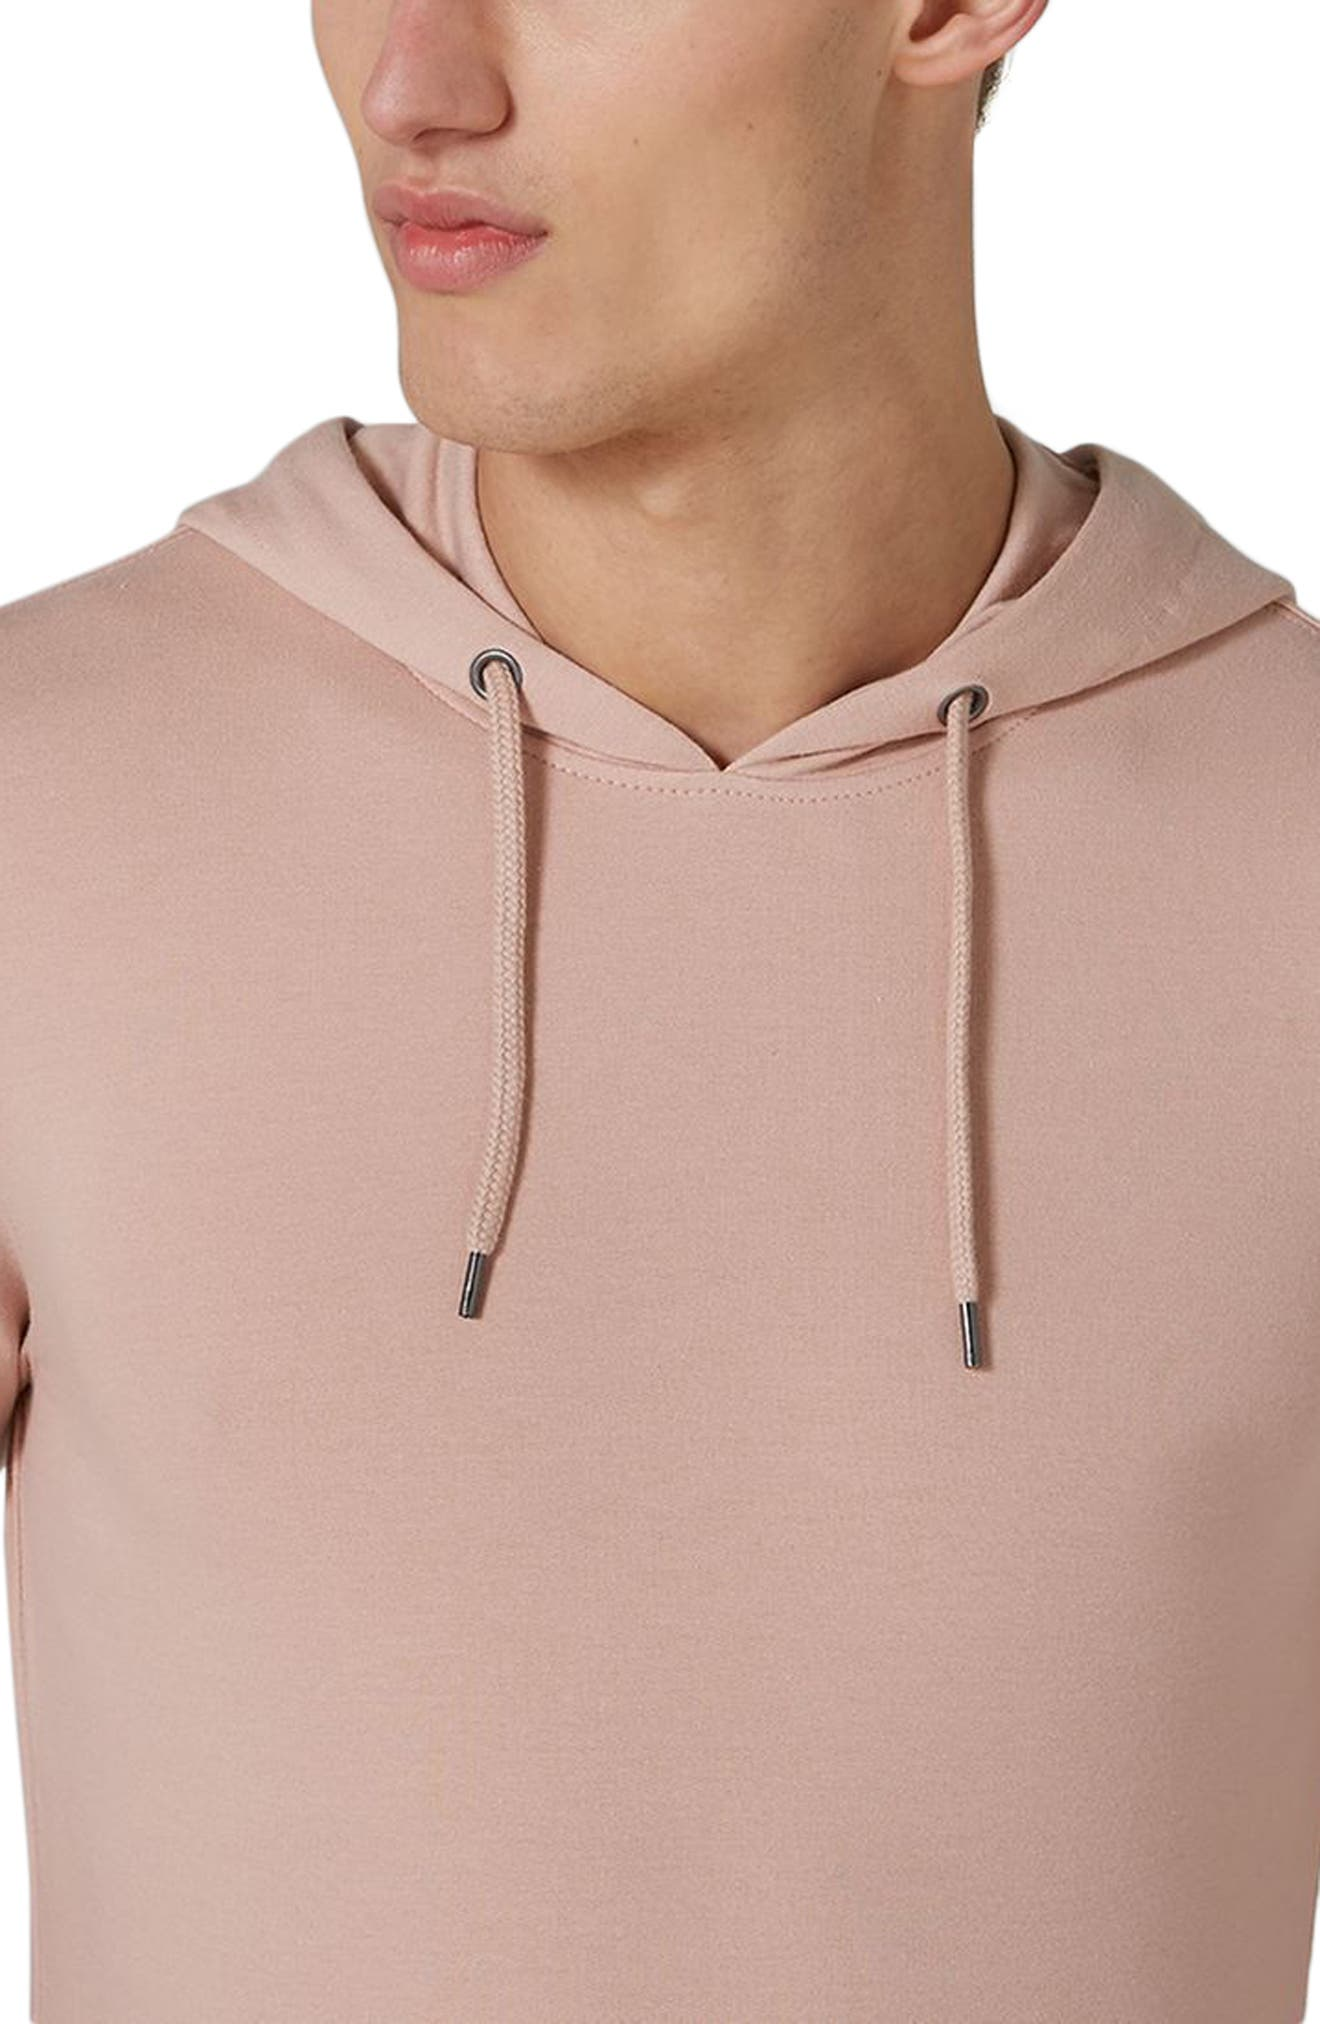 Ultra Muscle Fit Hoodie,                             Alternate thumbnail 9, color,